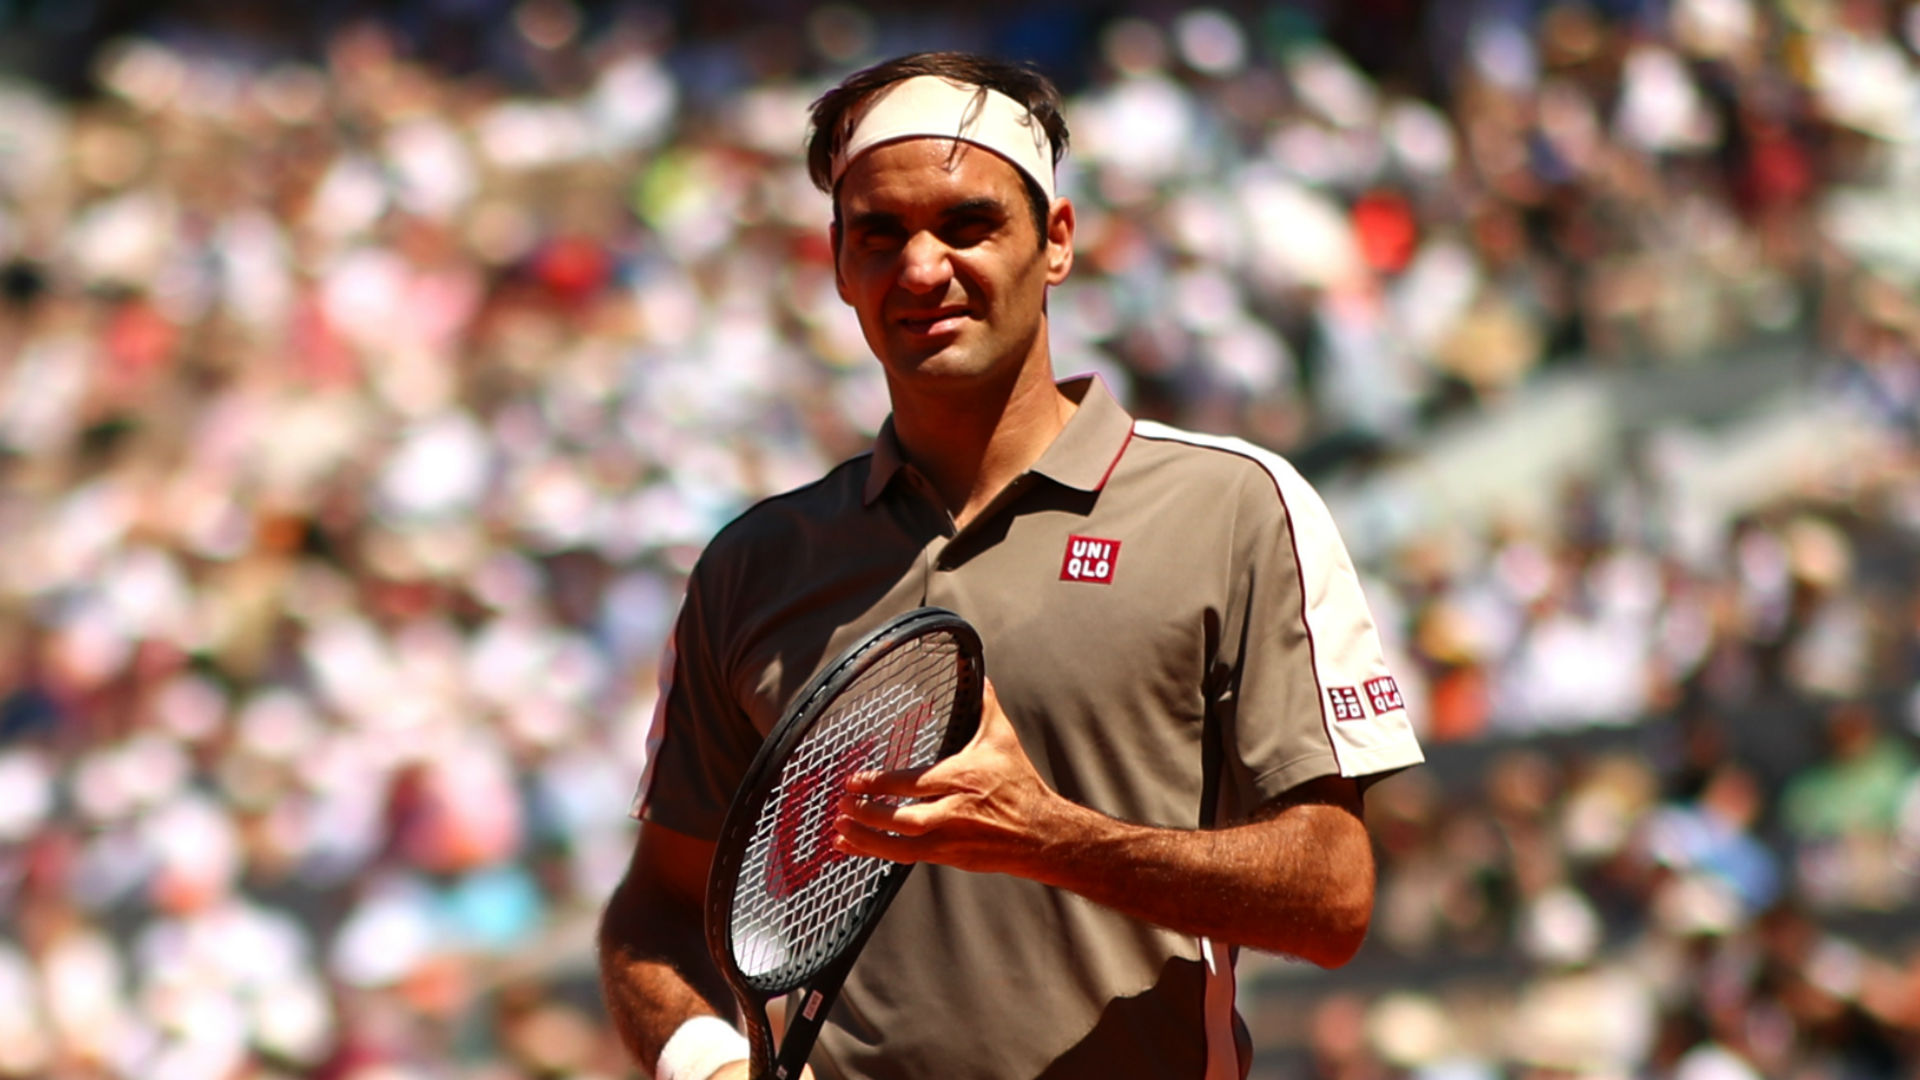 Roger cruises through Halle opener